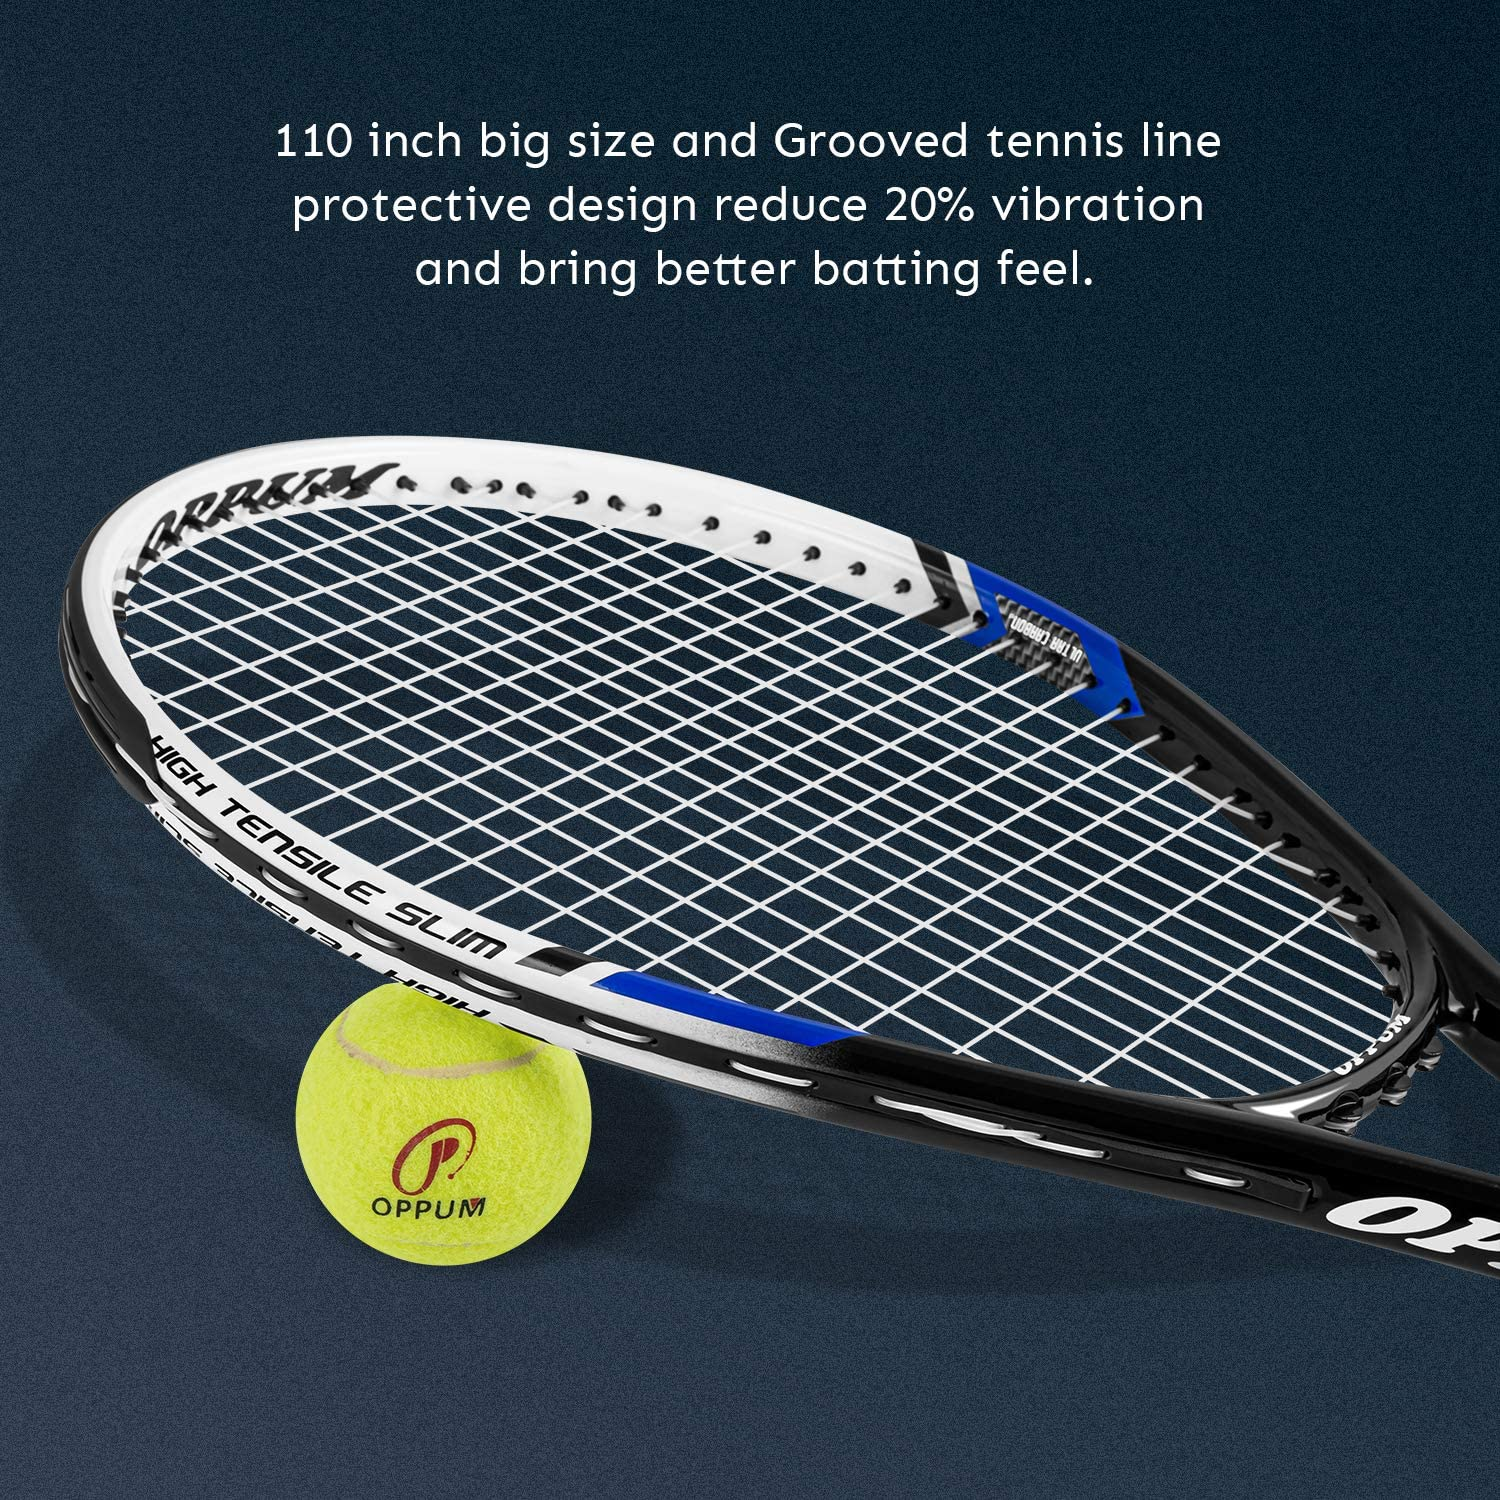 oppum Adult Carbon Fiber Tennis Racket, Super Light Weight Tennis Racquets Shock-Proof and Throw-Proof, Include Tennis Bag Tennis Overgrip (Aluminum-Carbon Racquet(Balck Blue), 4 3/8) : Sports & Outdoors